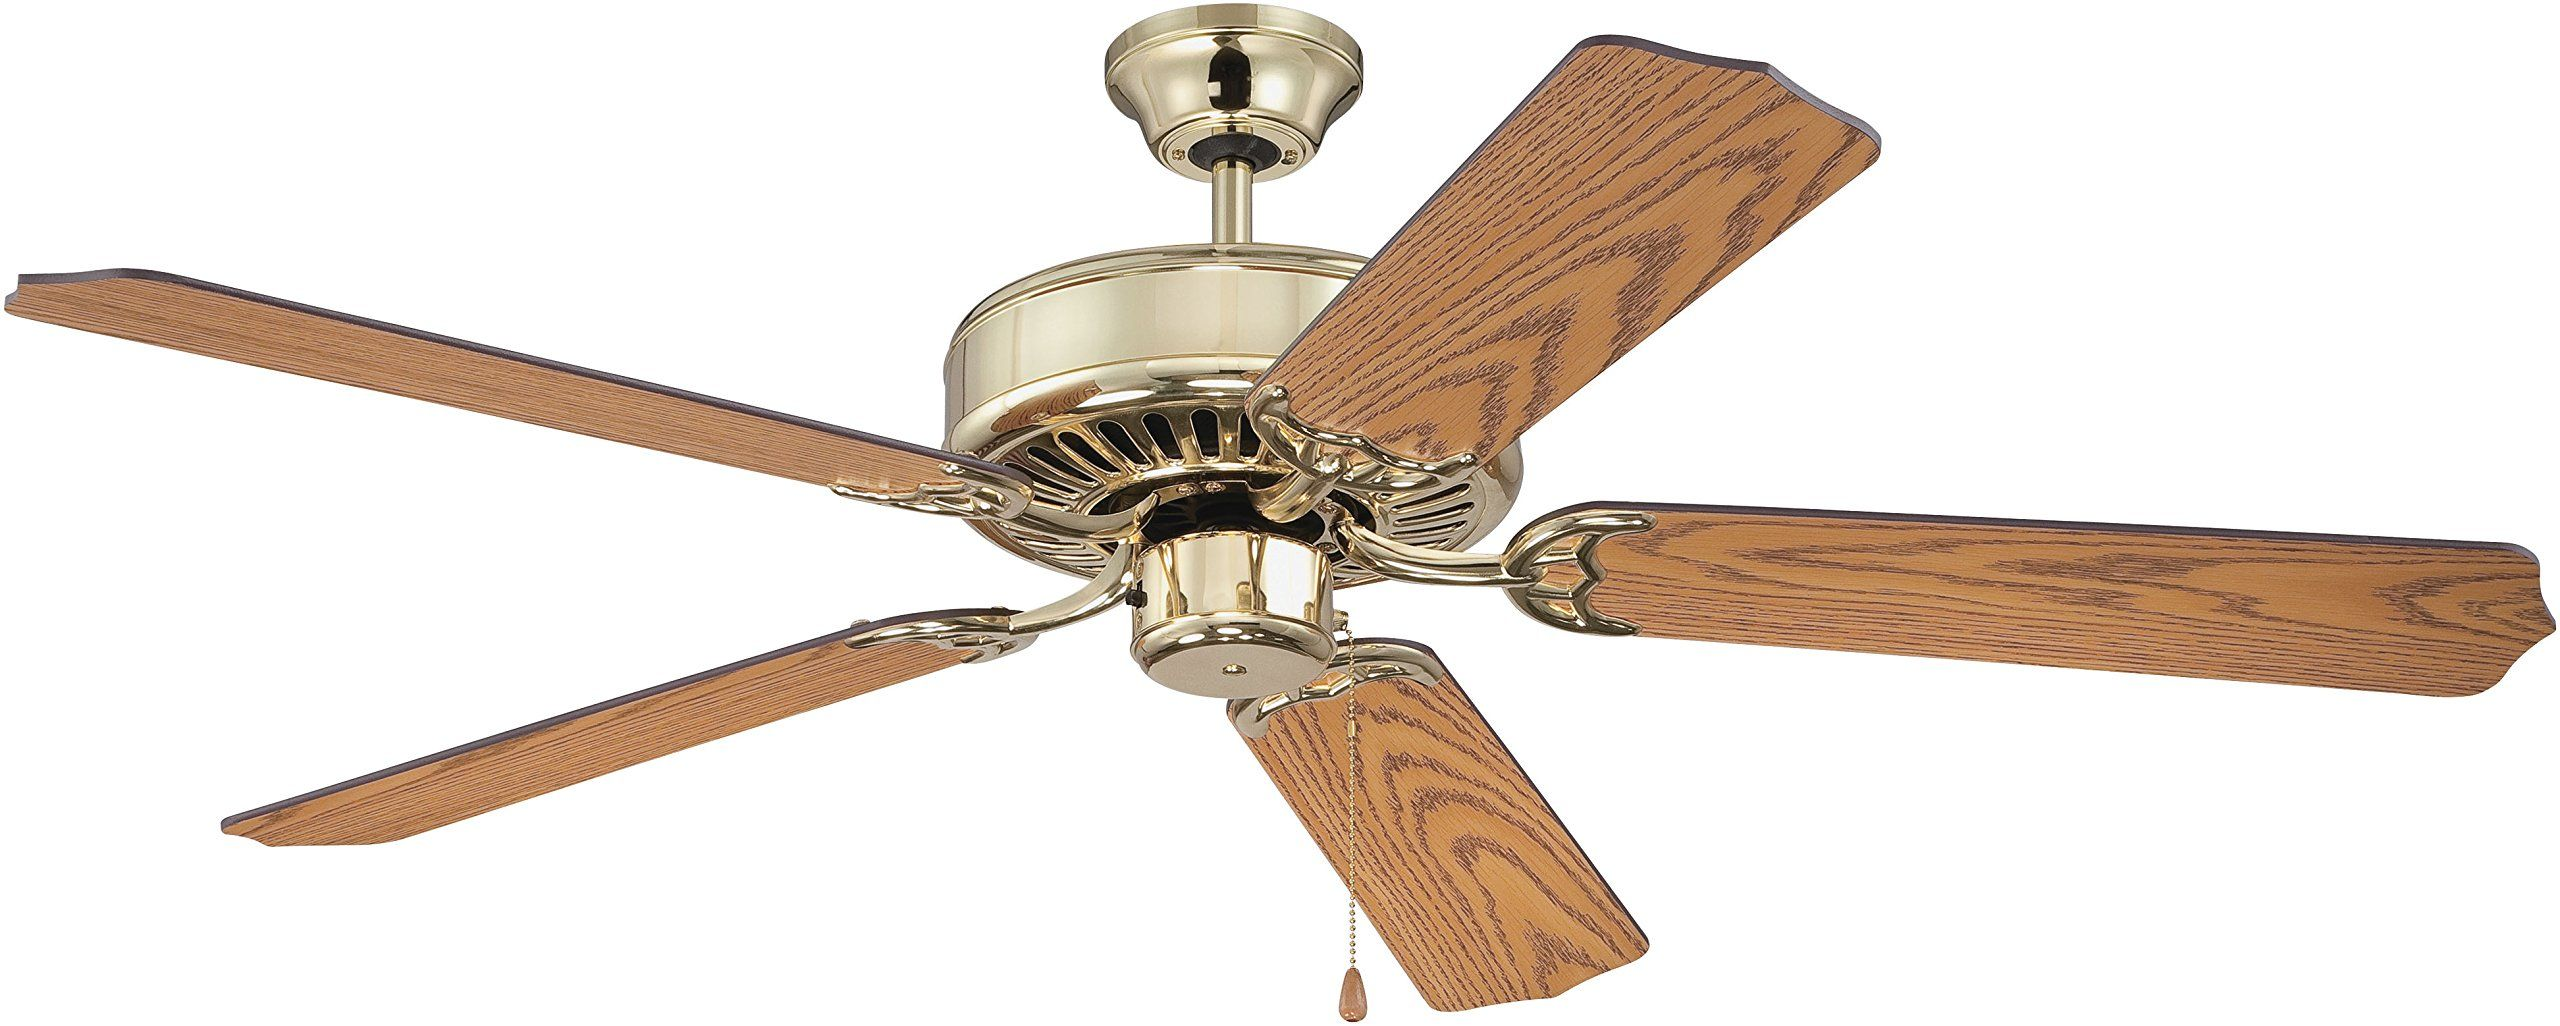 Craftmade K11137 Ceiling Fan Motor With Blades Included 52 #Outdoorceilingfan